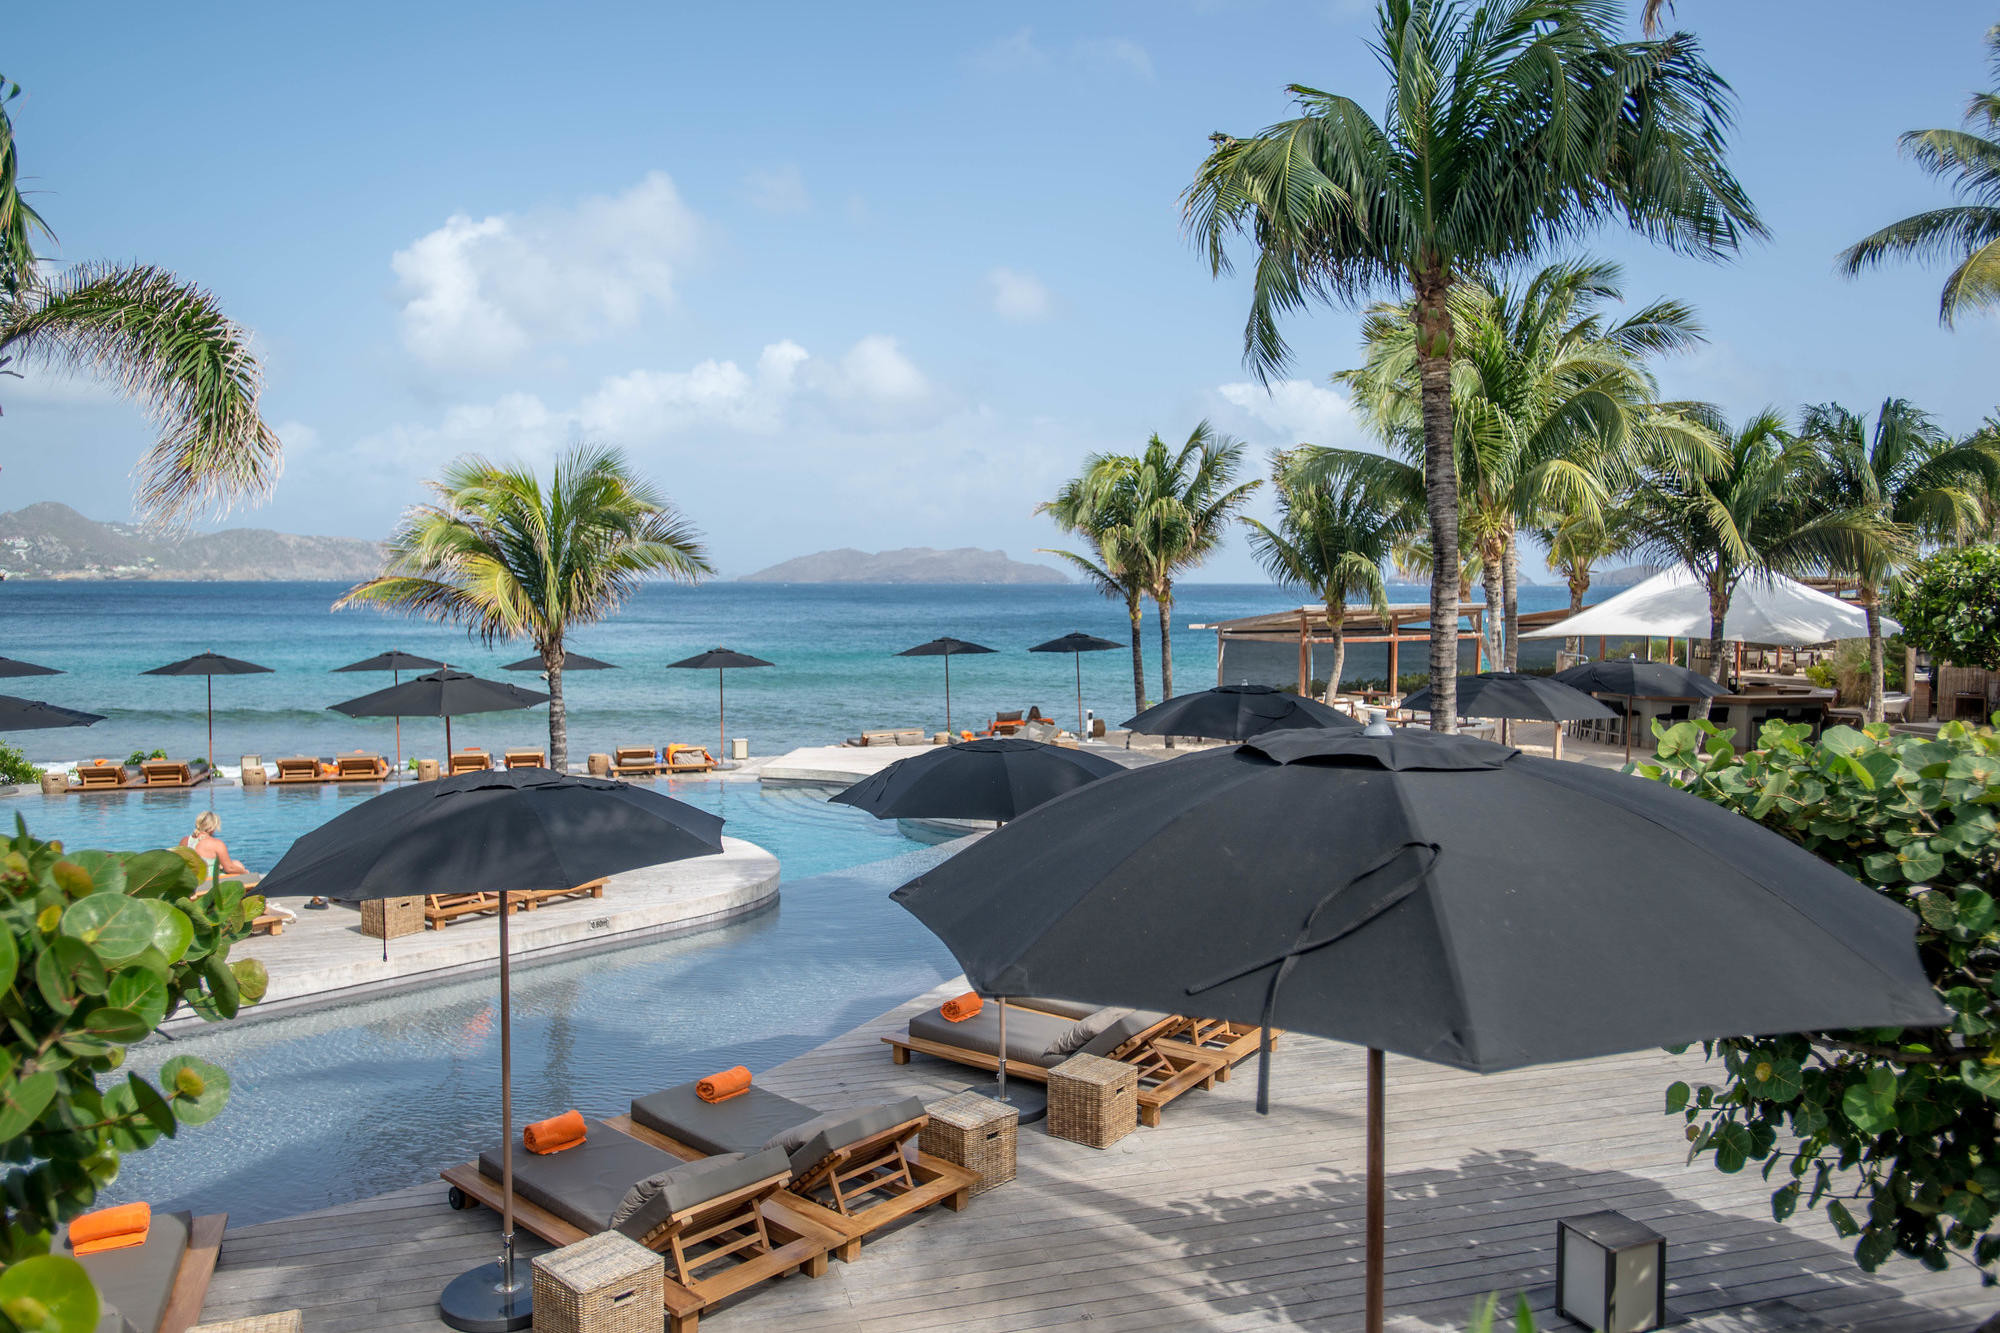 Pool at Christoper St. Barth in St. Barts